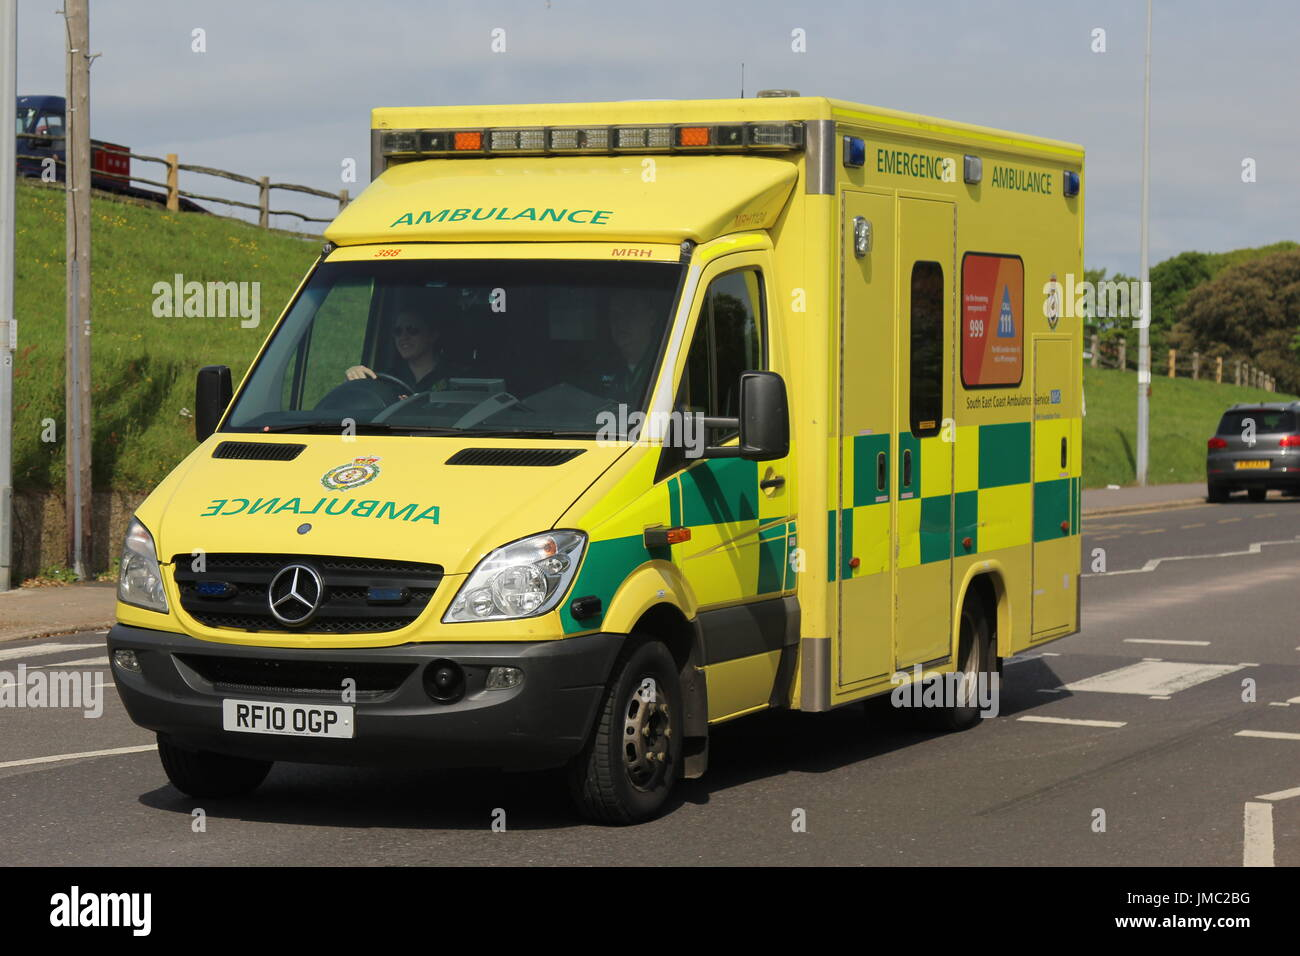 A SUNNY NEARSIDE LANDSCAPE VIEW OF A SOUTH EAST COAST AMBULANCE SERVICE VEHICLE DRIVING ALONG A ROAD - Stock Image